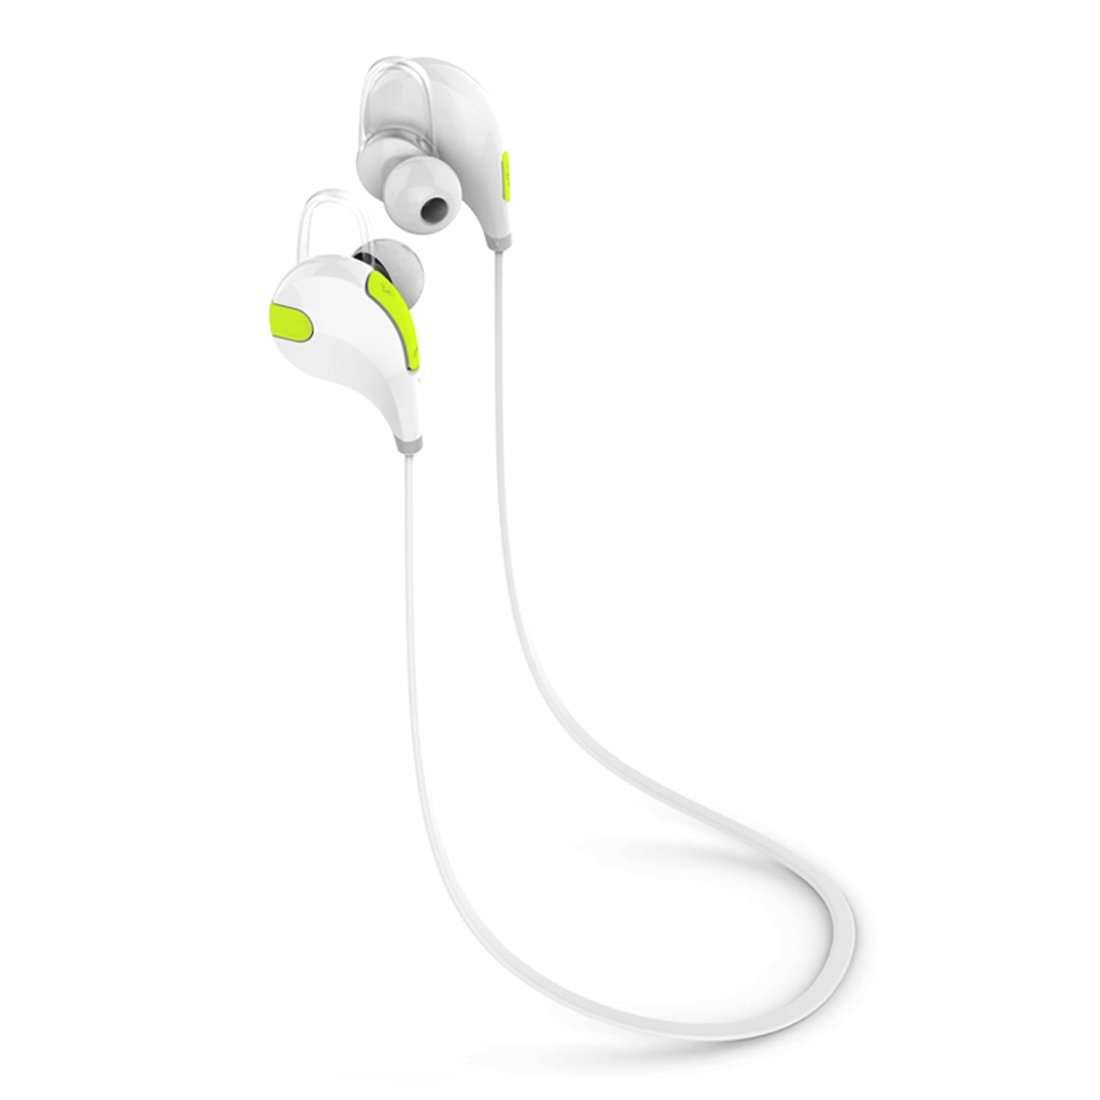 Bluetooth Headphones, SUFUM Wireless Earbuds Bluetooth In-Ear Headphones with Microphone for iPhone, Samsung, Android, HTC and other Bluetooth-enabled Devices (White)